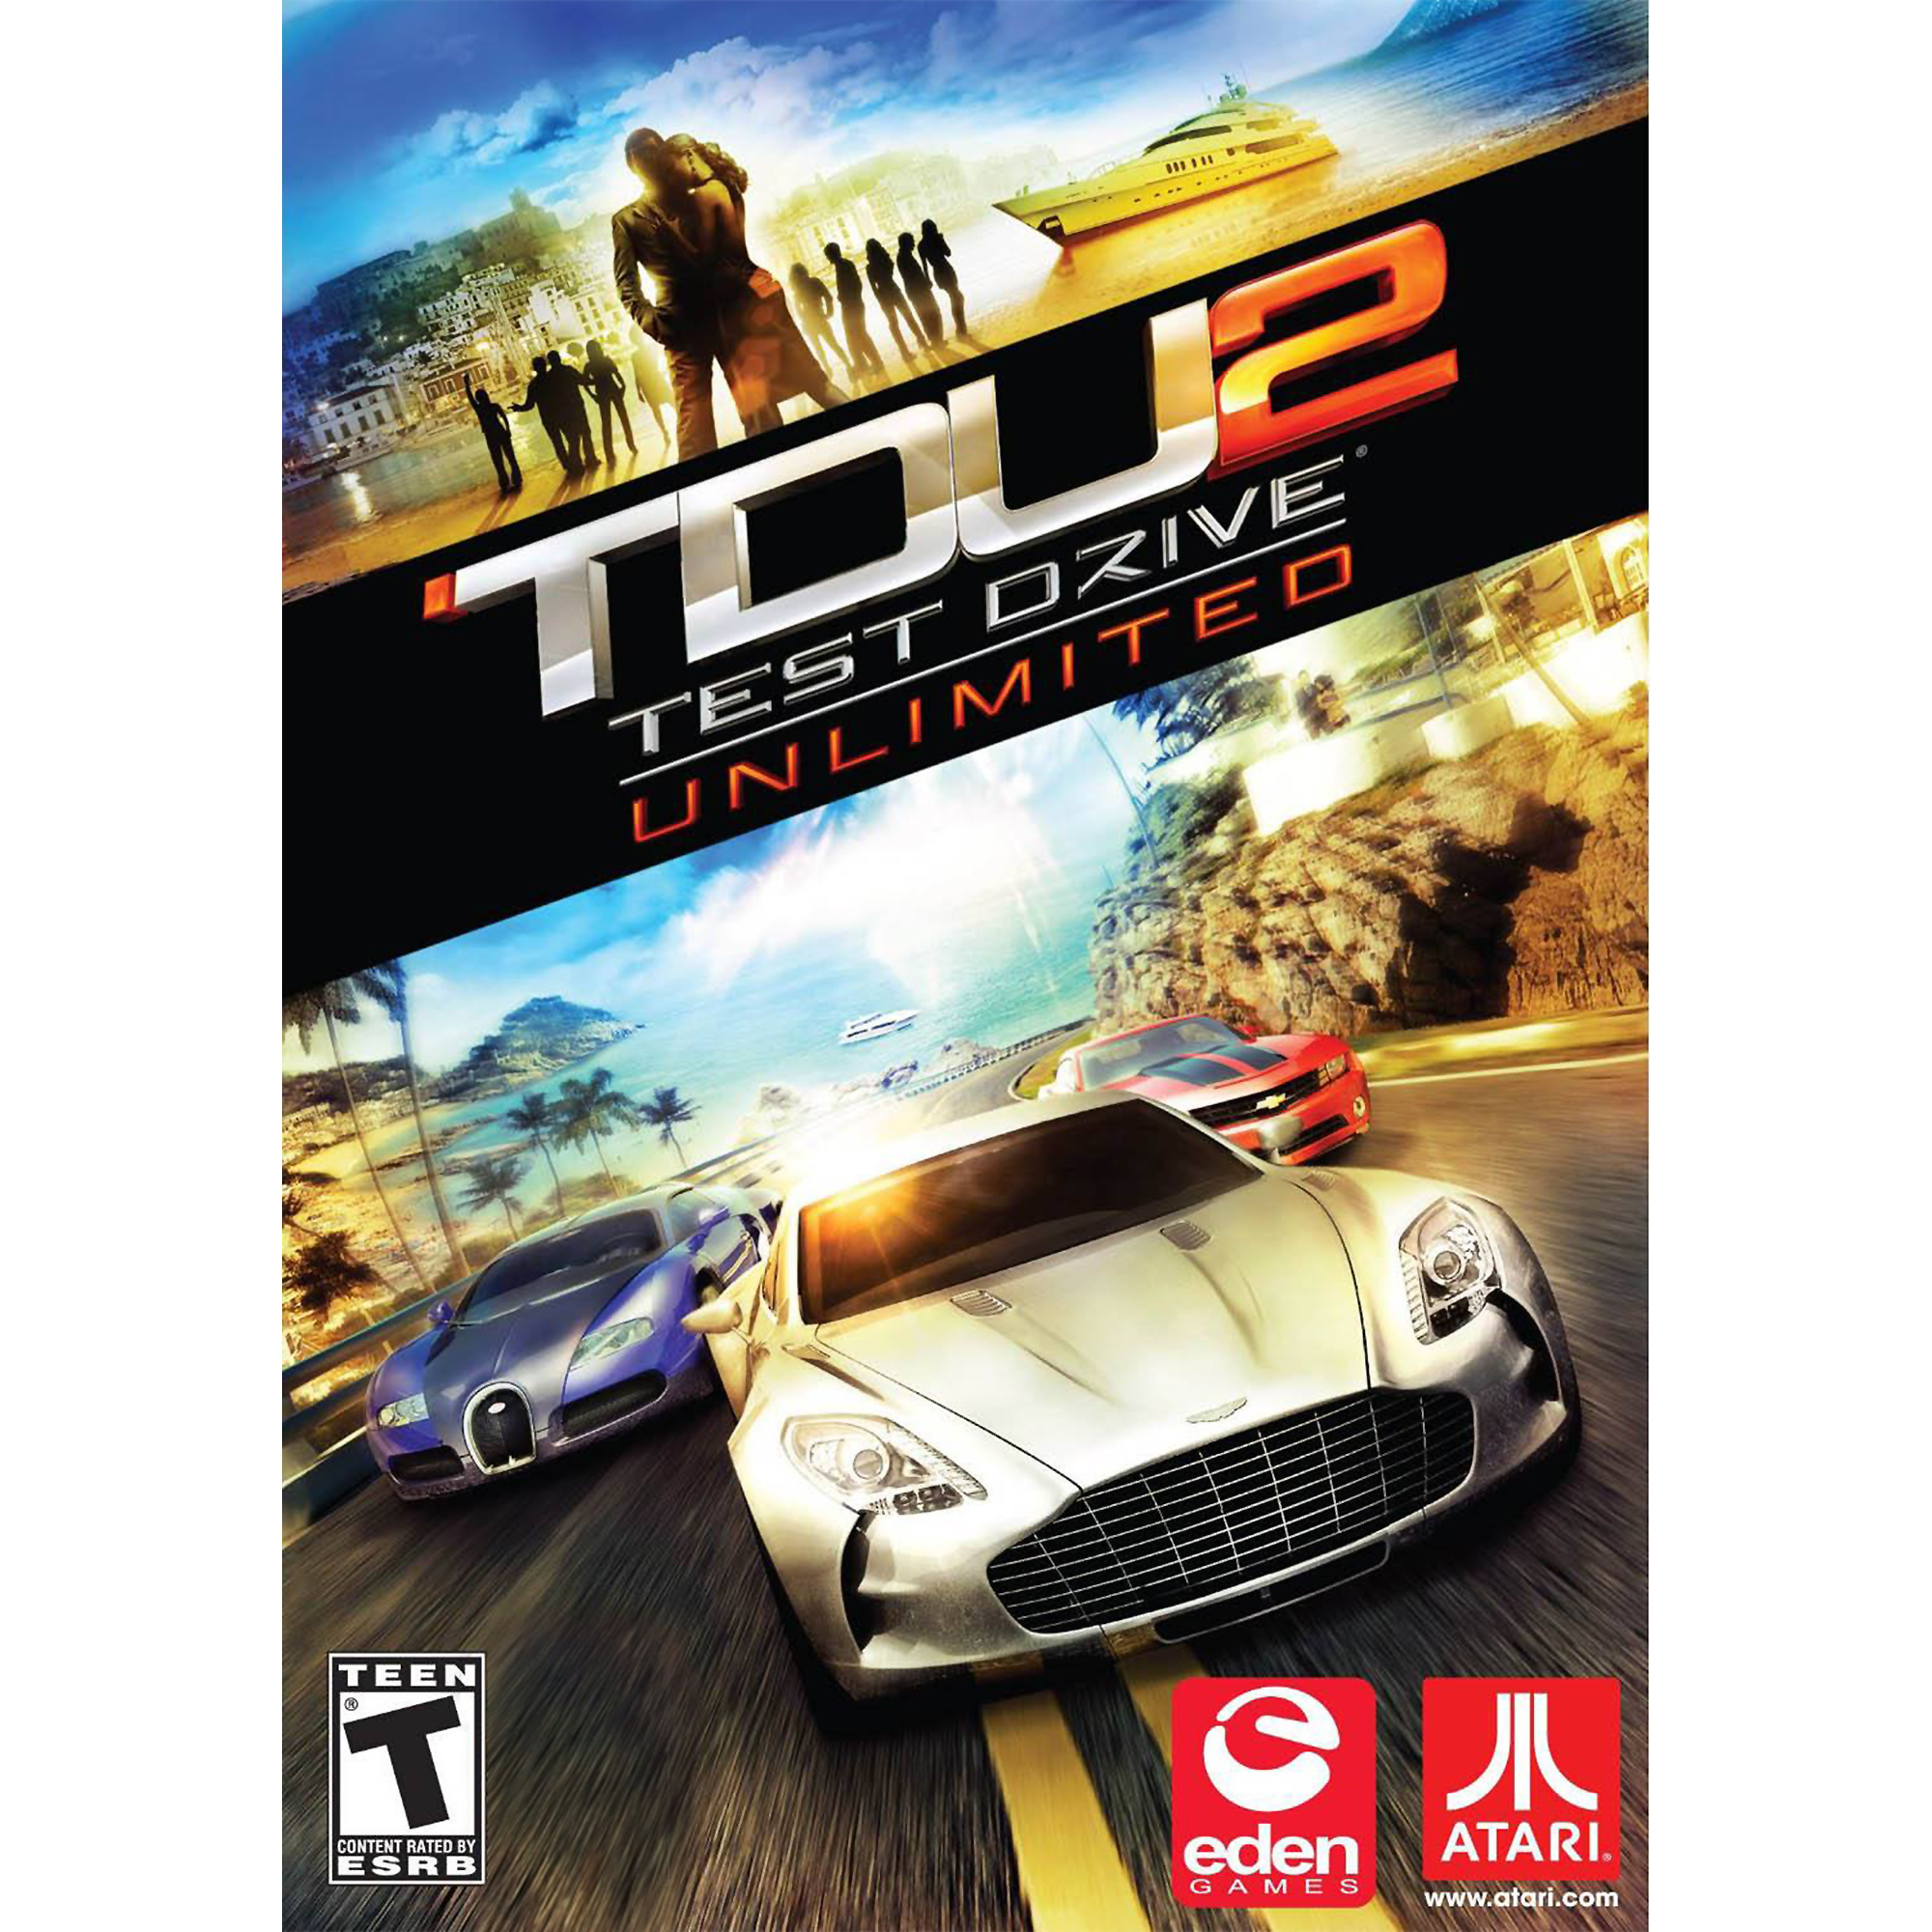 Test Drive Unlimited 2 (PC) (Email Delivery)